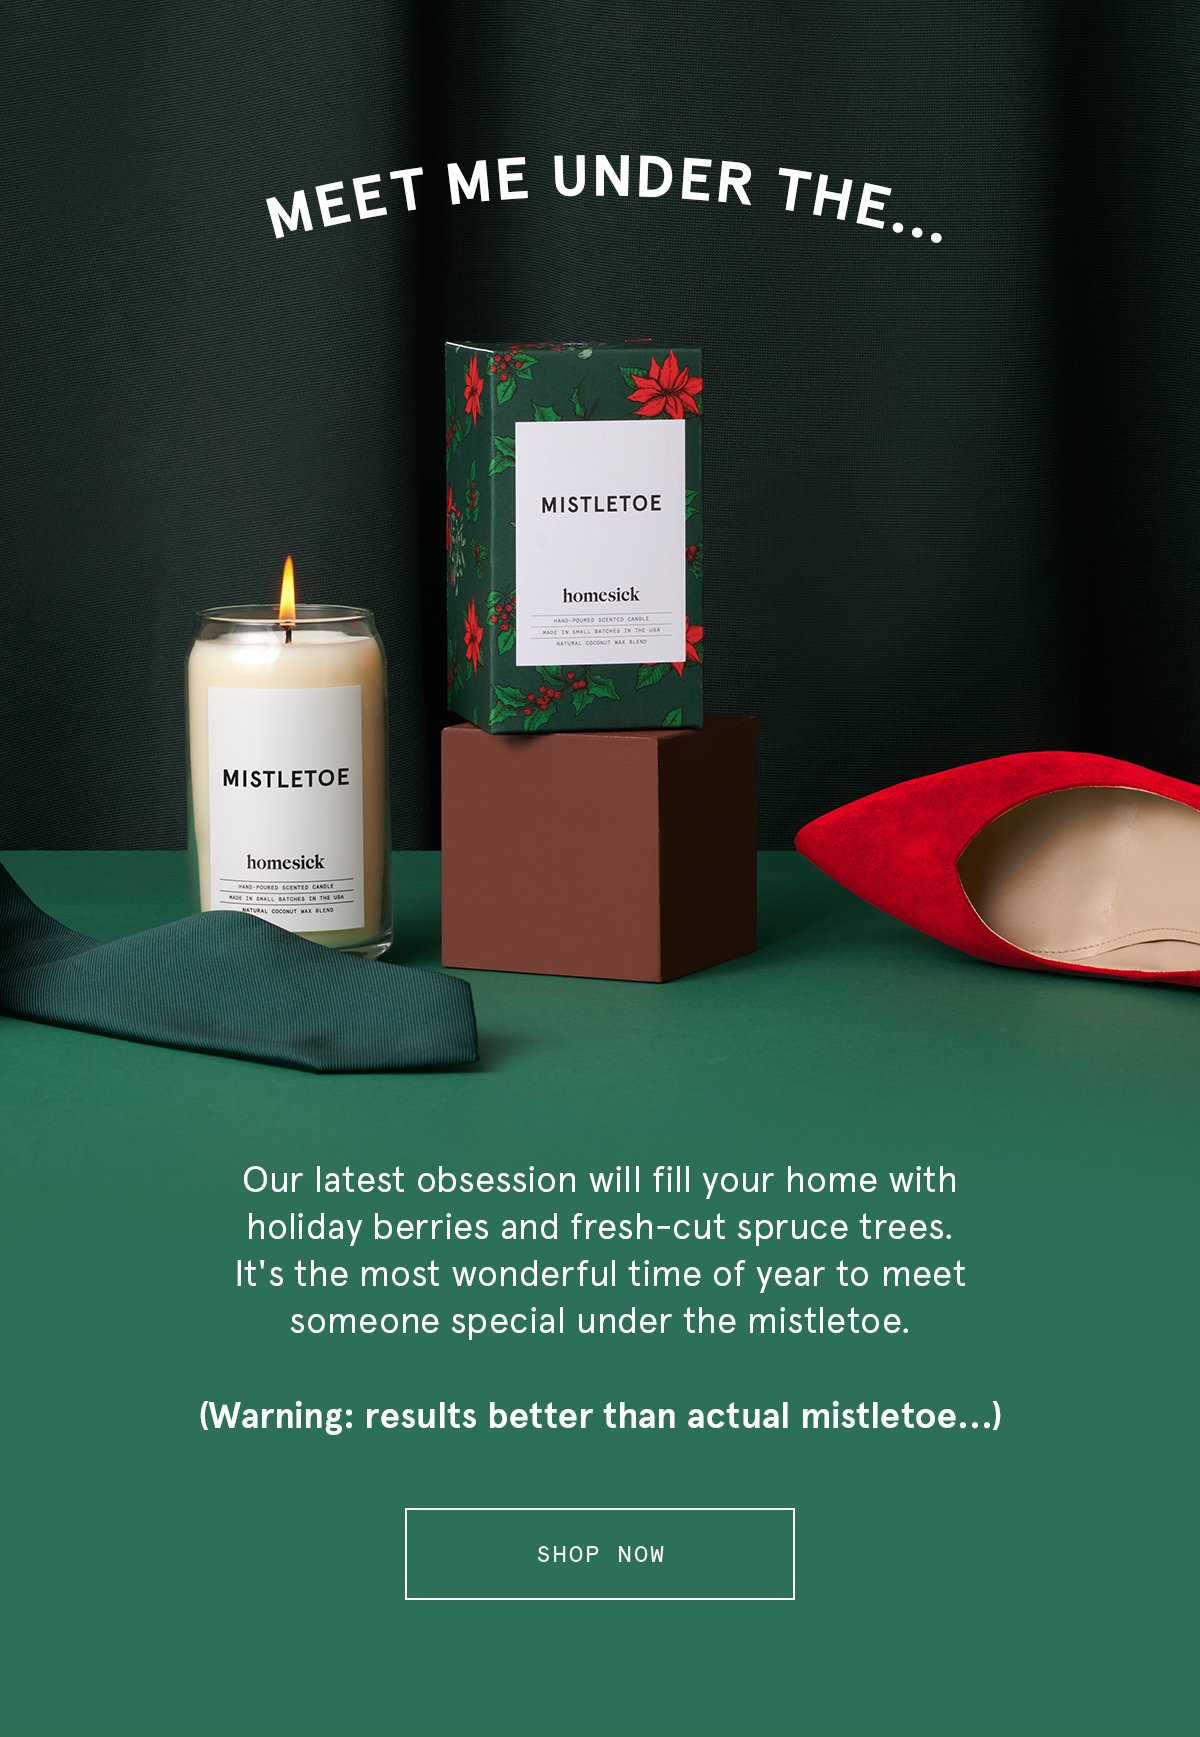 MEET ME UNDER THE... | Our latest obsession will fill your home with holiday berries and fresh-cut spruce trees. It's the most wonderful time of year to meet someone special under the mistletoe. (Warning: results better than actual mistletoe...) SHOP NOW